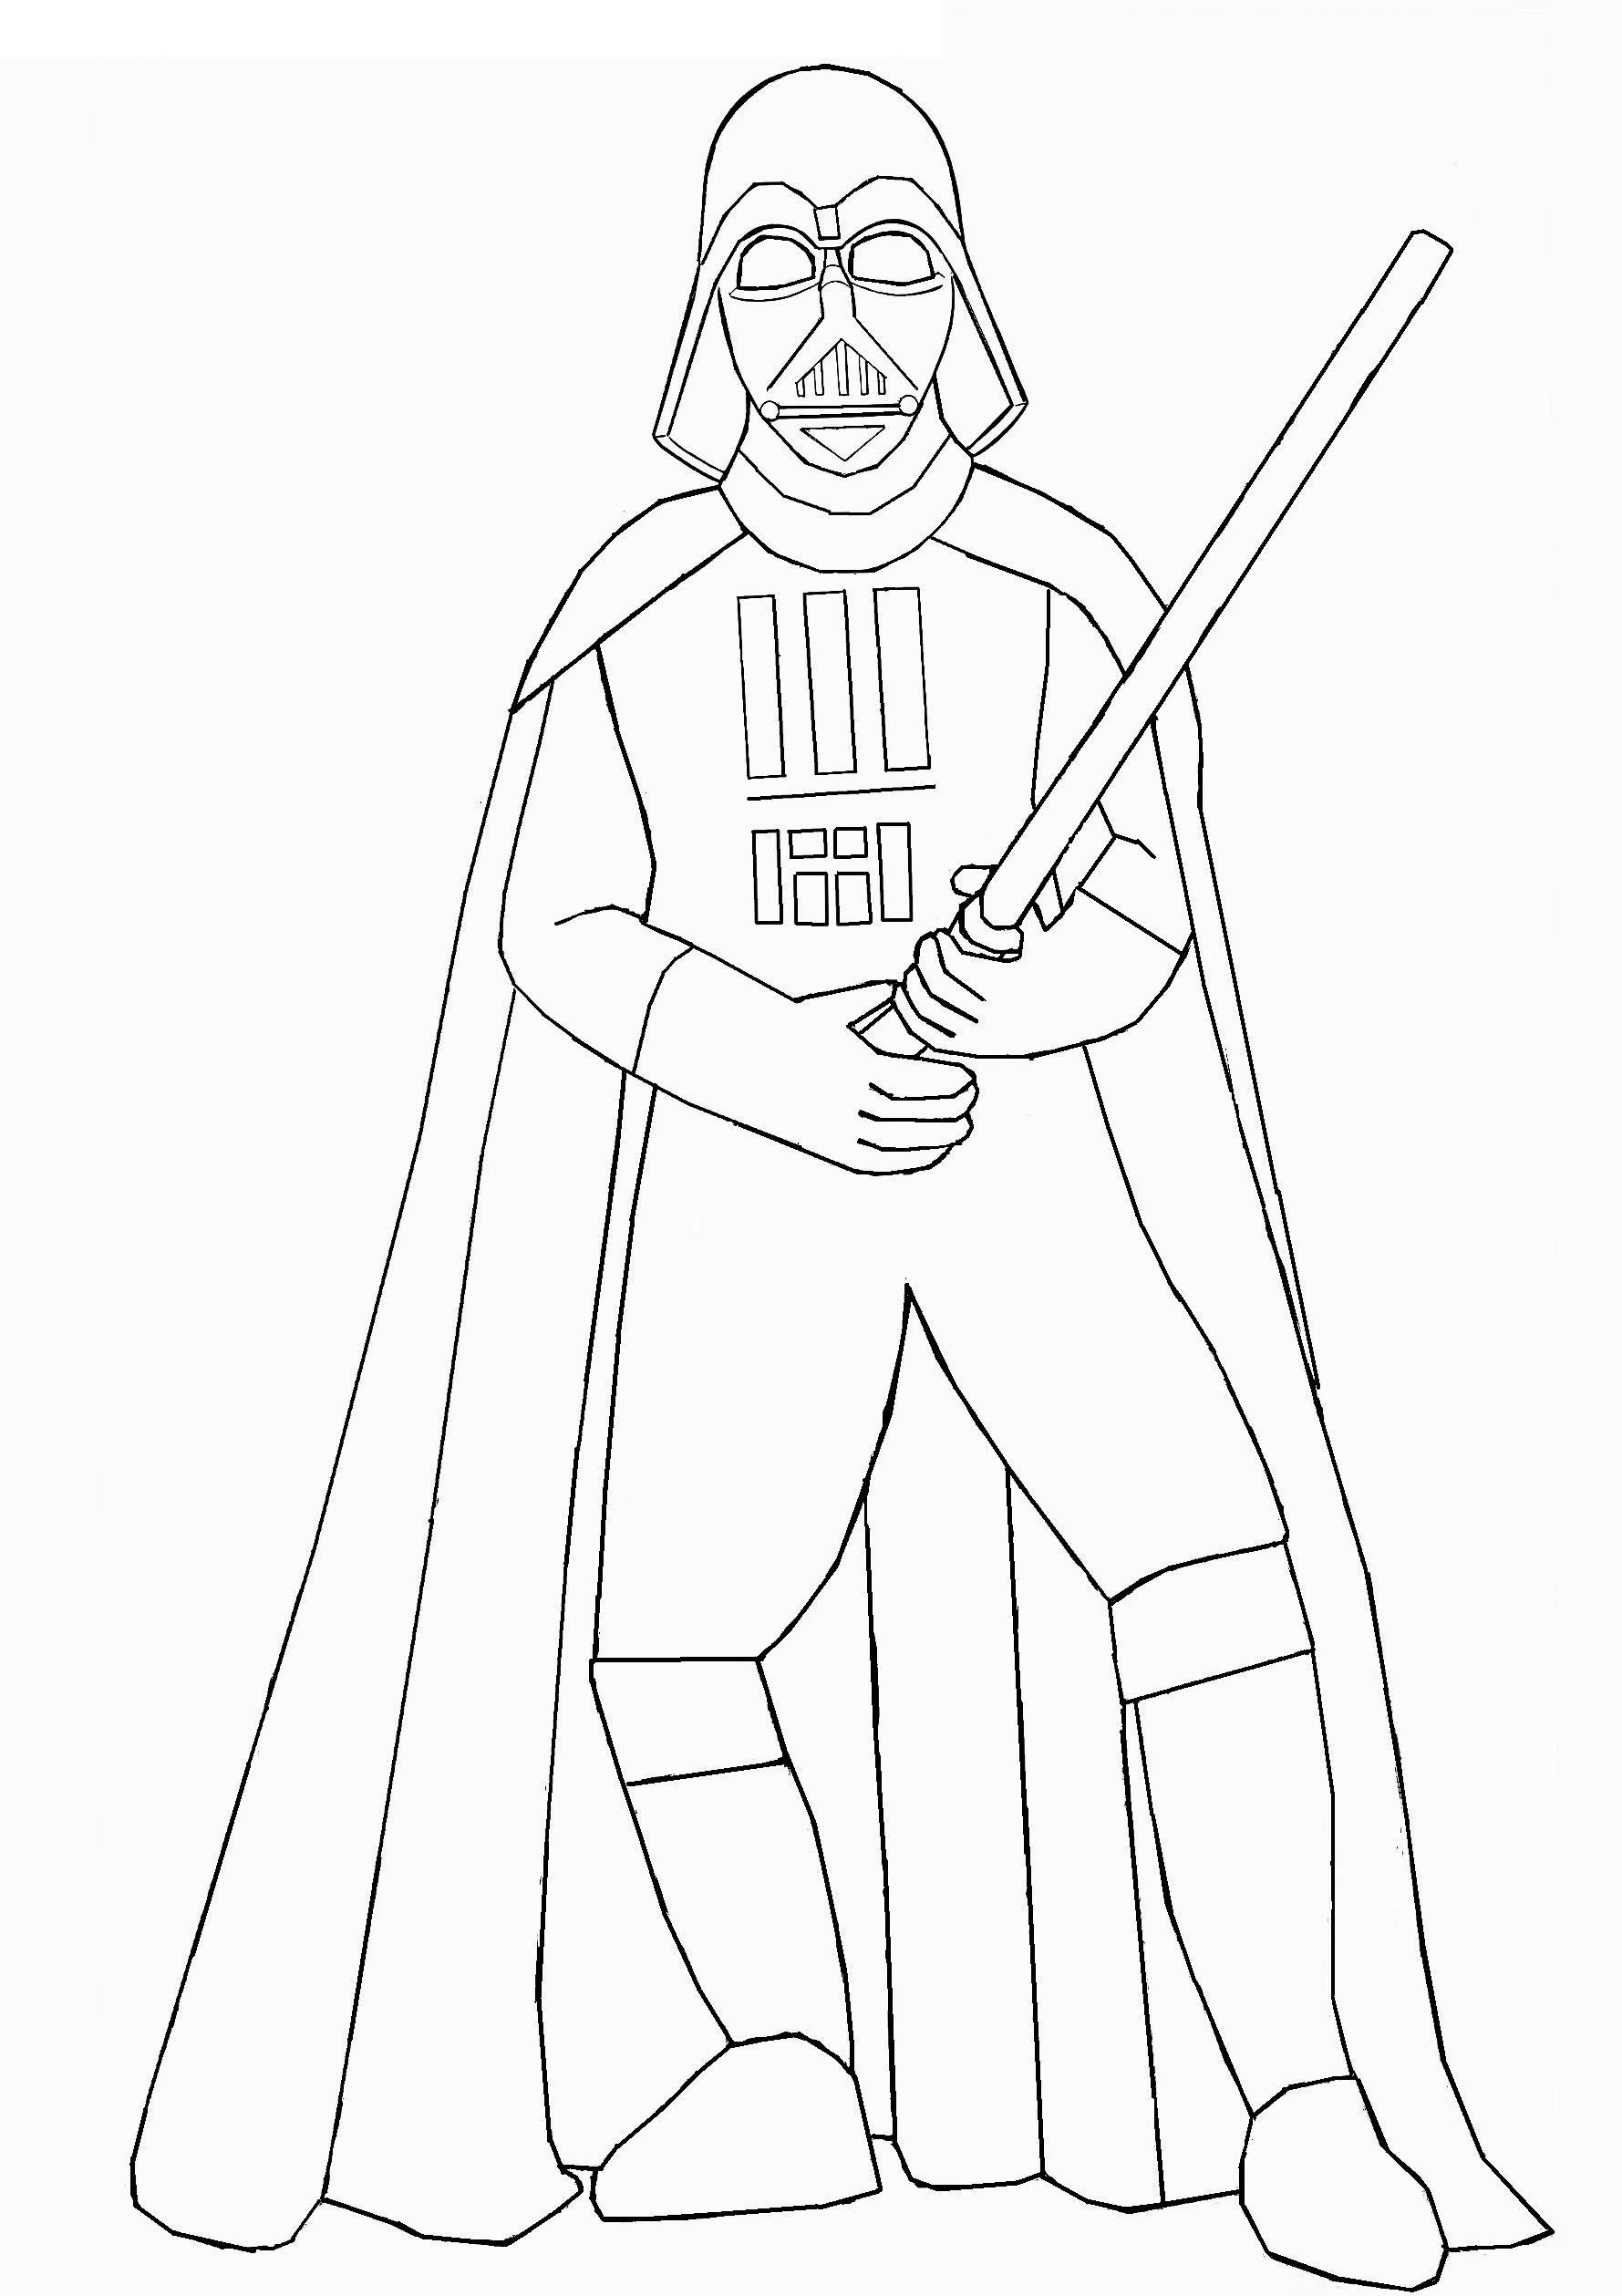 Lightsaber Coloring Pages Best Coloring Pages For Kids Star Wars Coloring Book Coloring Pages Darth Vader